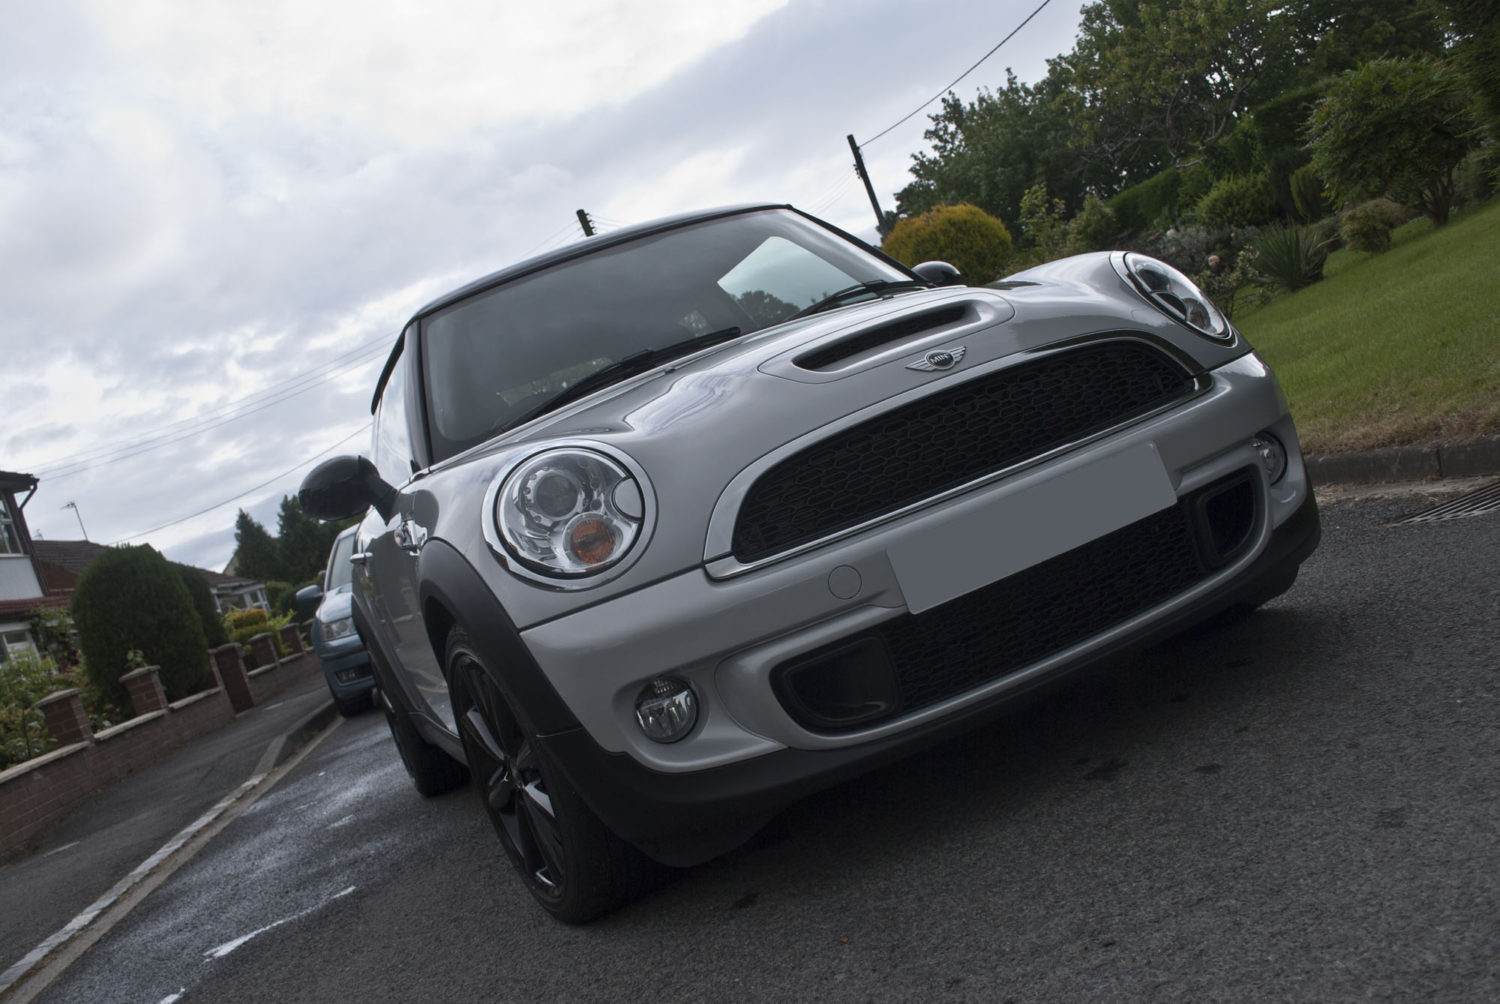 Mini Cooper S Detailed by DWR Detailing